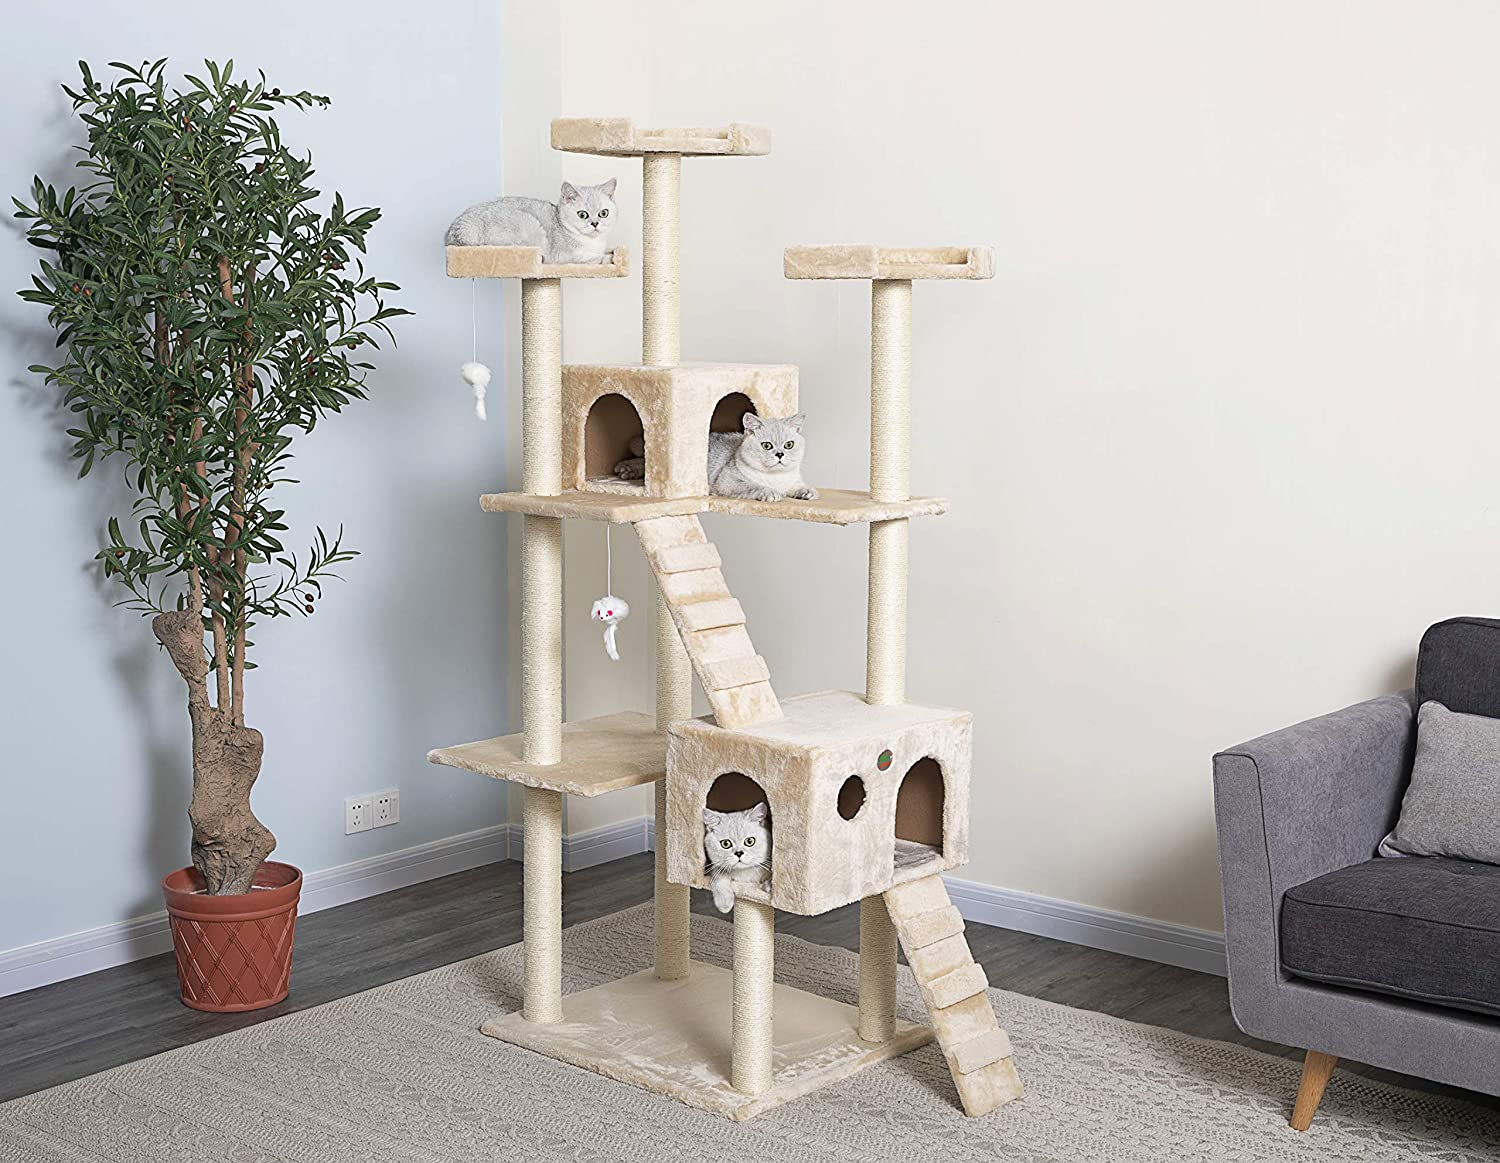 4. Go Pet Club F2040-Beige Cat Tree